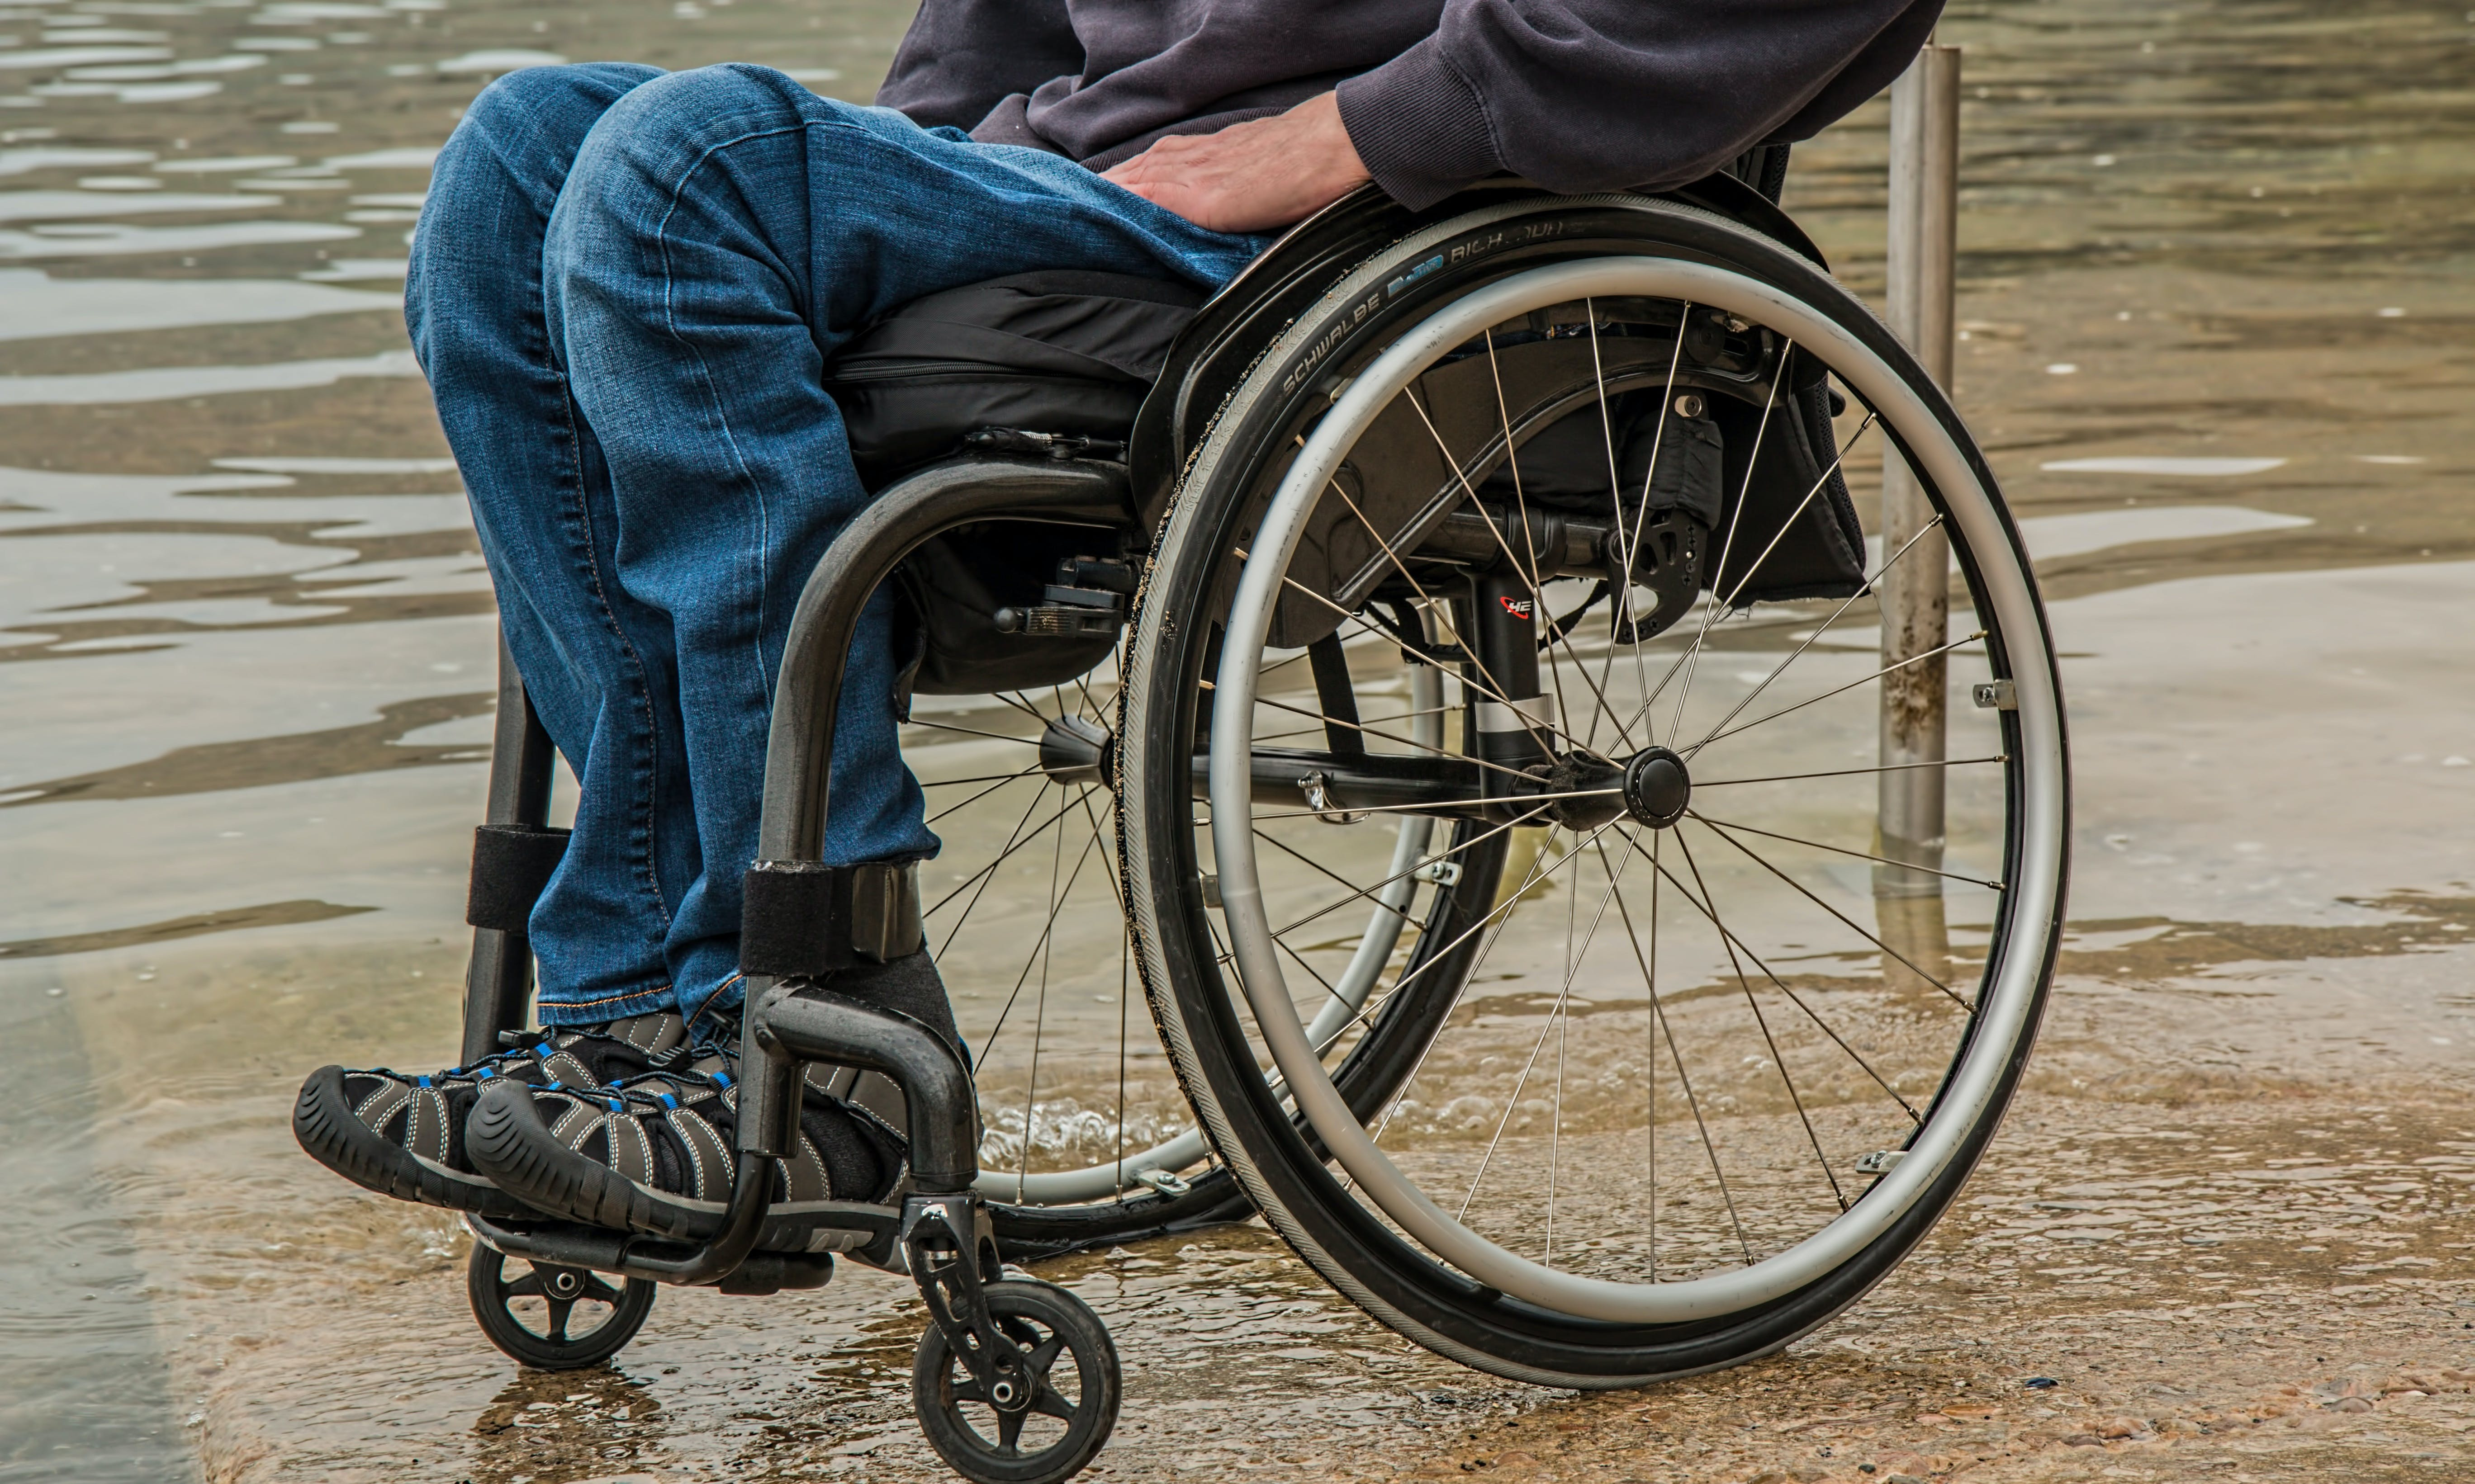 Indonesia Is Making Progress Towards Disabled-Friendly Elections